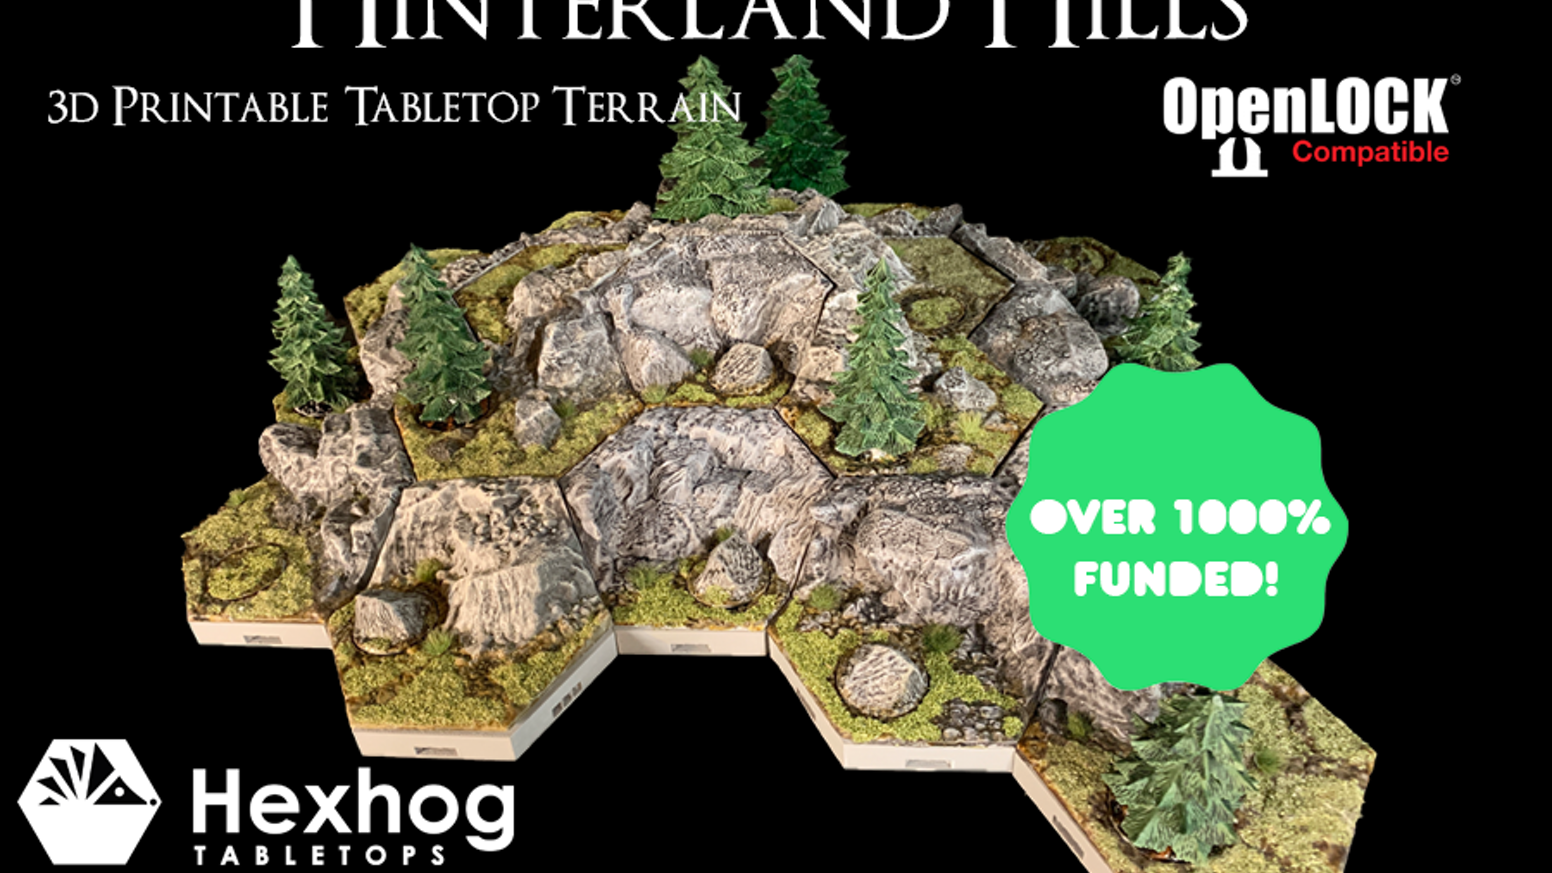 Hexhog Tabletops: Hinterland Hills 3D printable modular terrain for tabletop games, such as Warhammer, D&D, and SW Legion